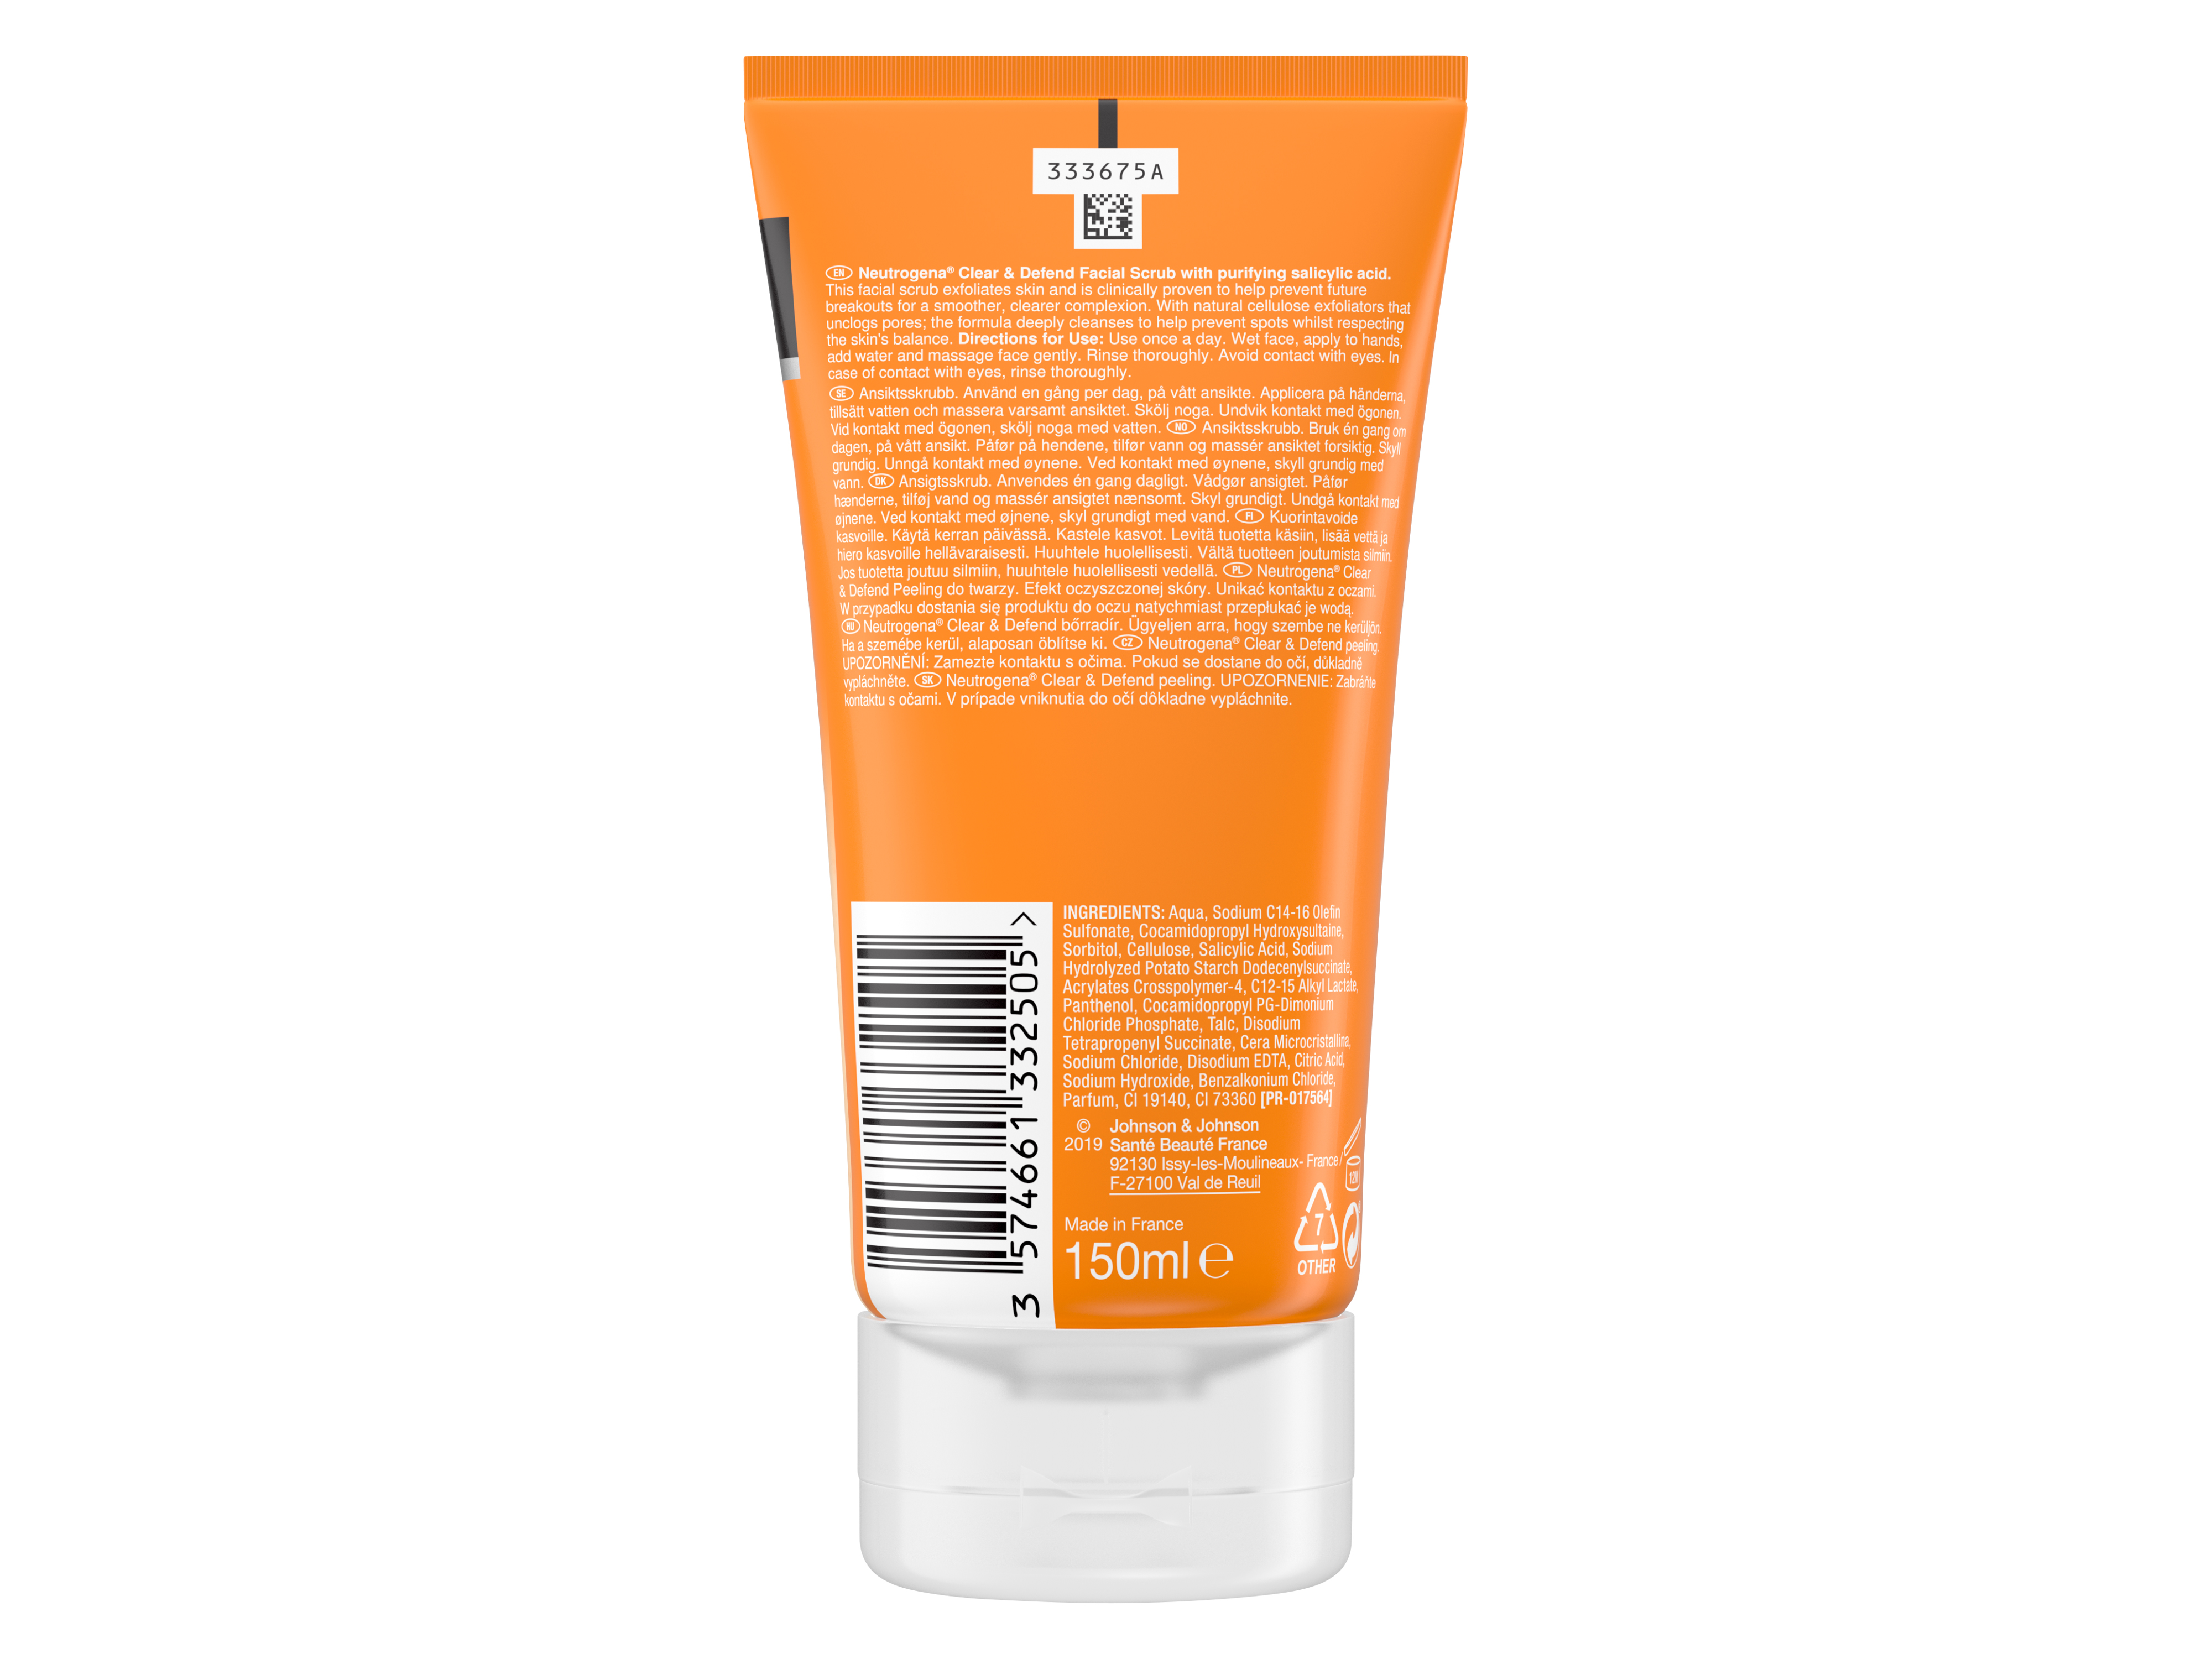 Neutrogena Clear & Defend Daily Facial Scrub, 150 ml